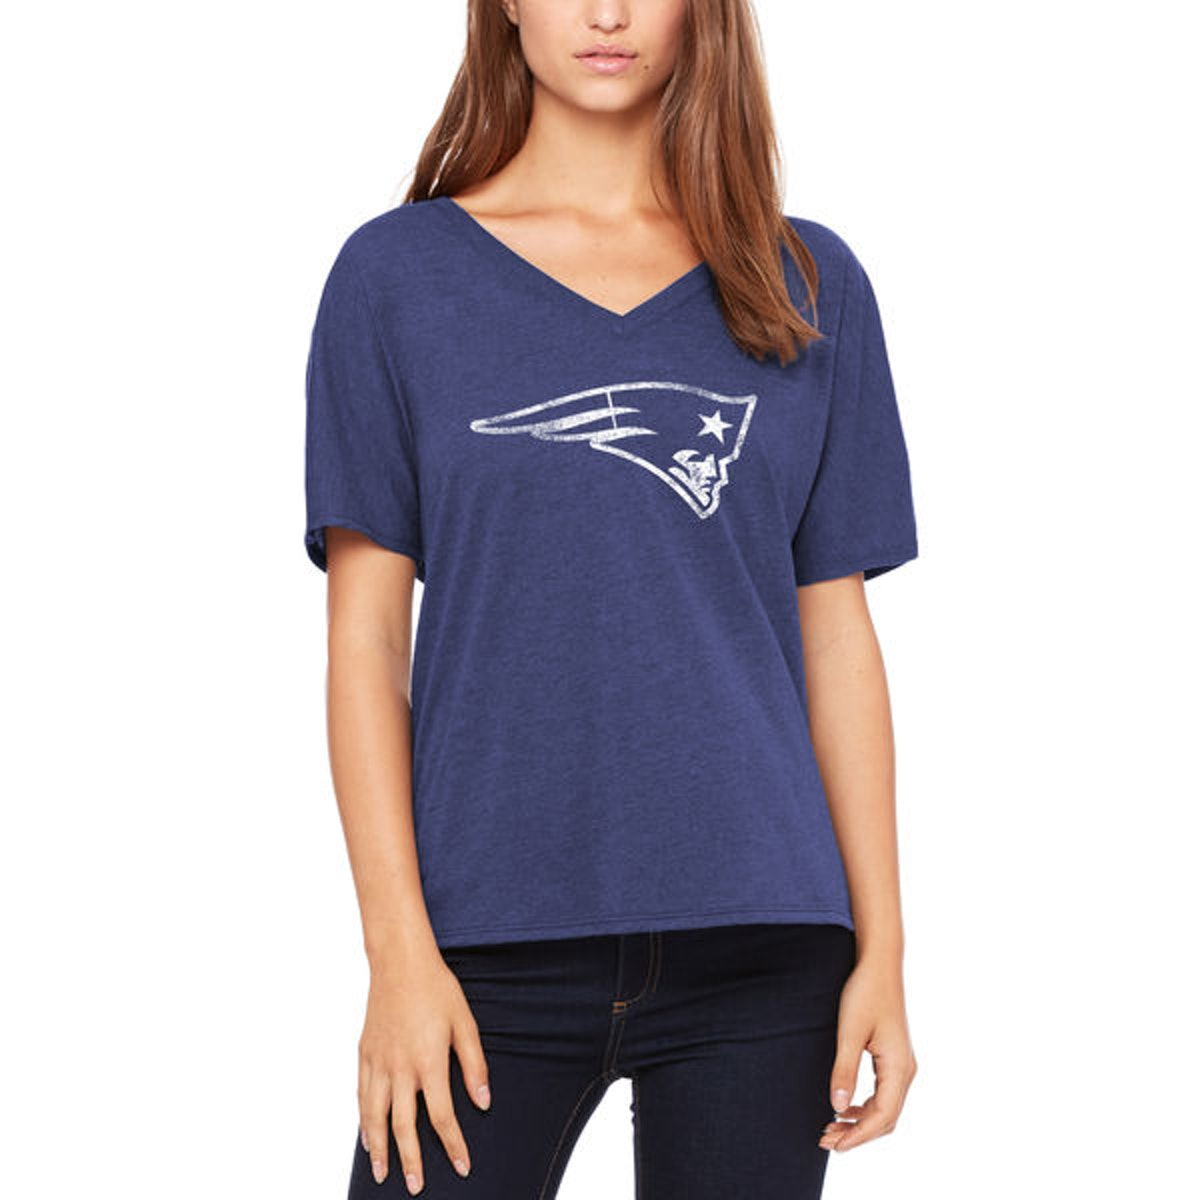 Let Loose by RNL New England Patriots Women's Navy Distressed Primary V-Neck T-Shirt